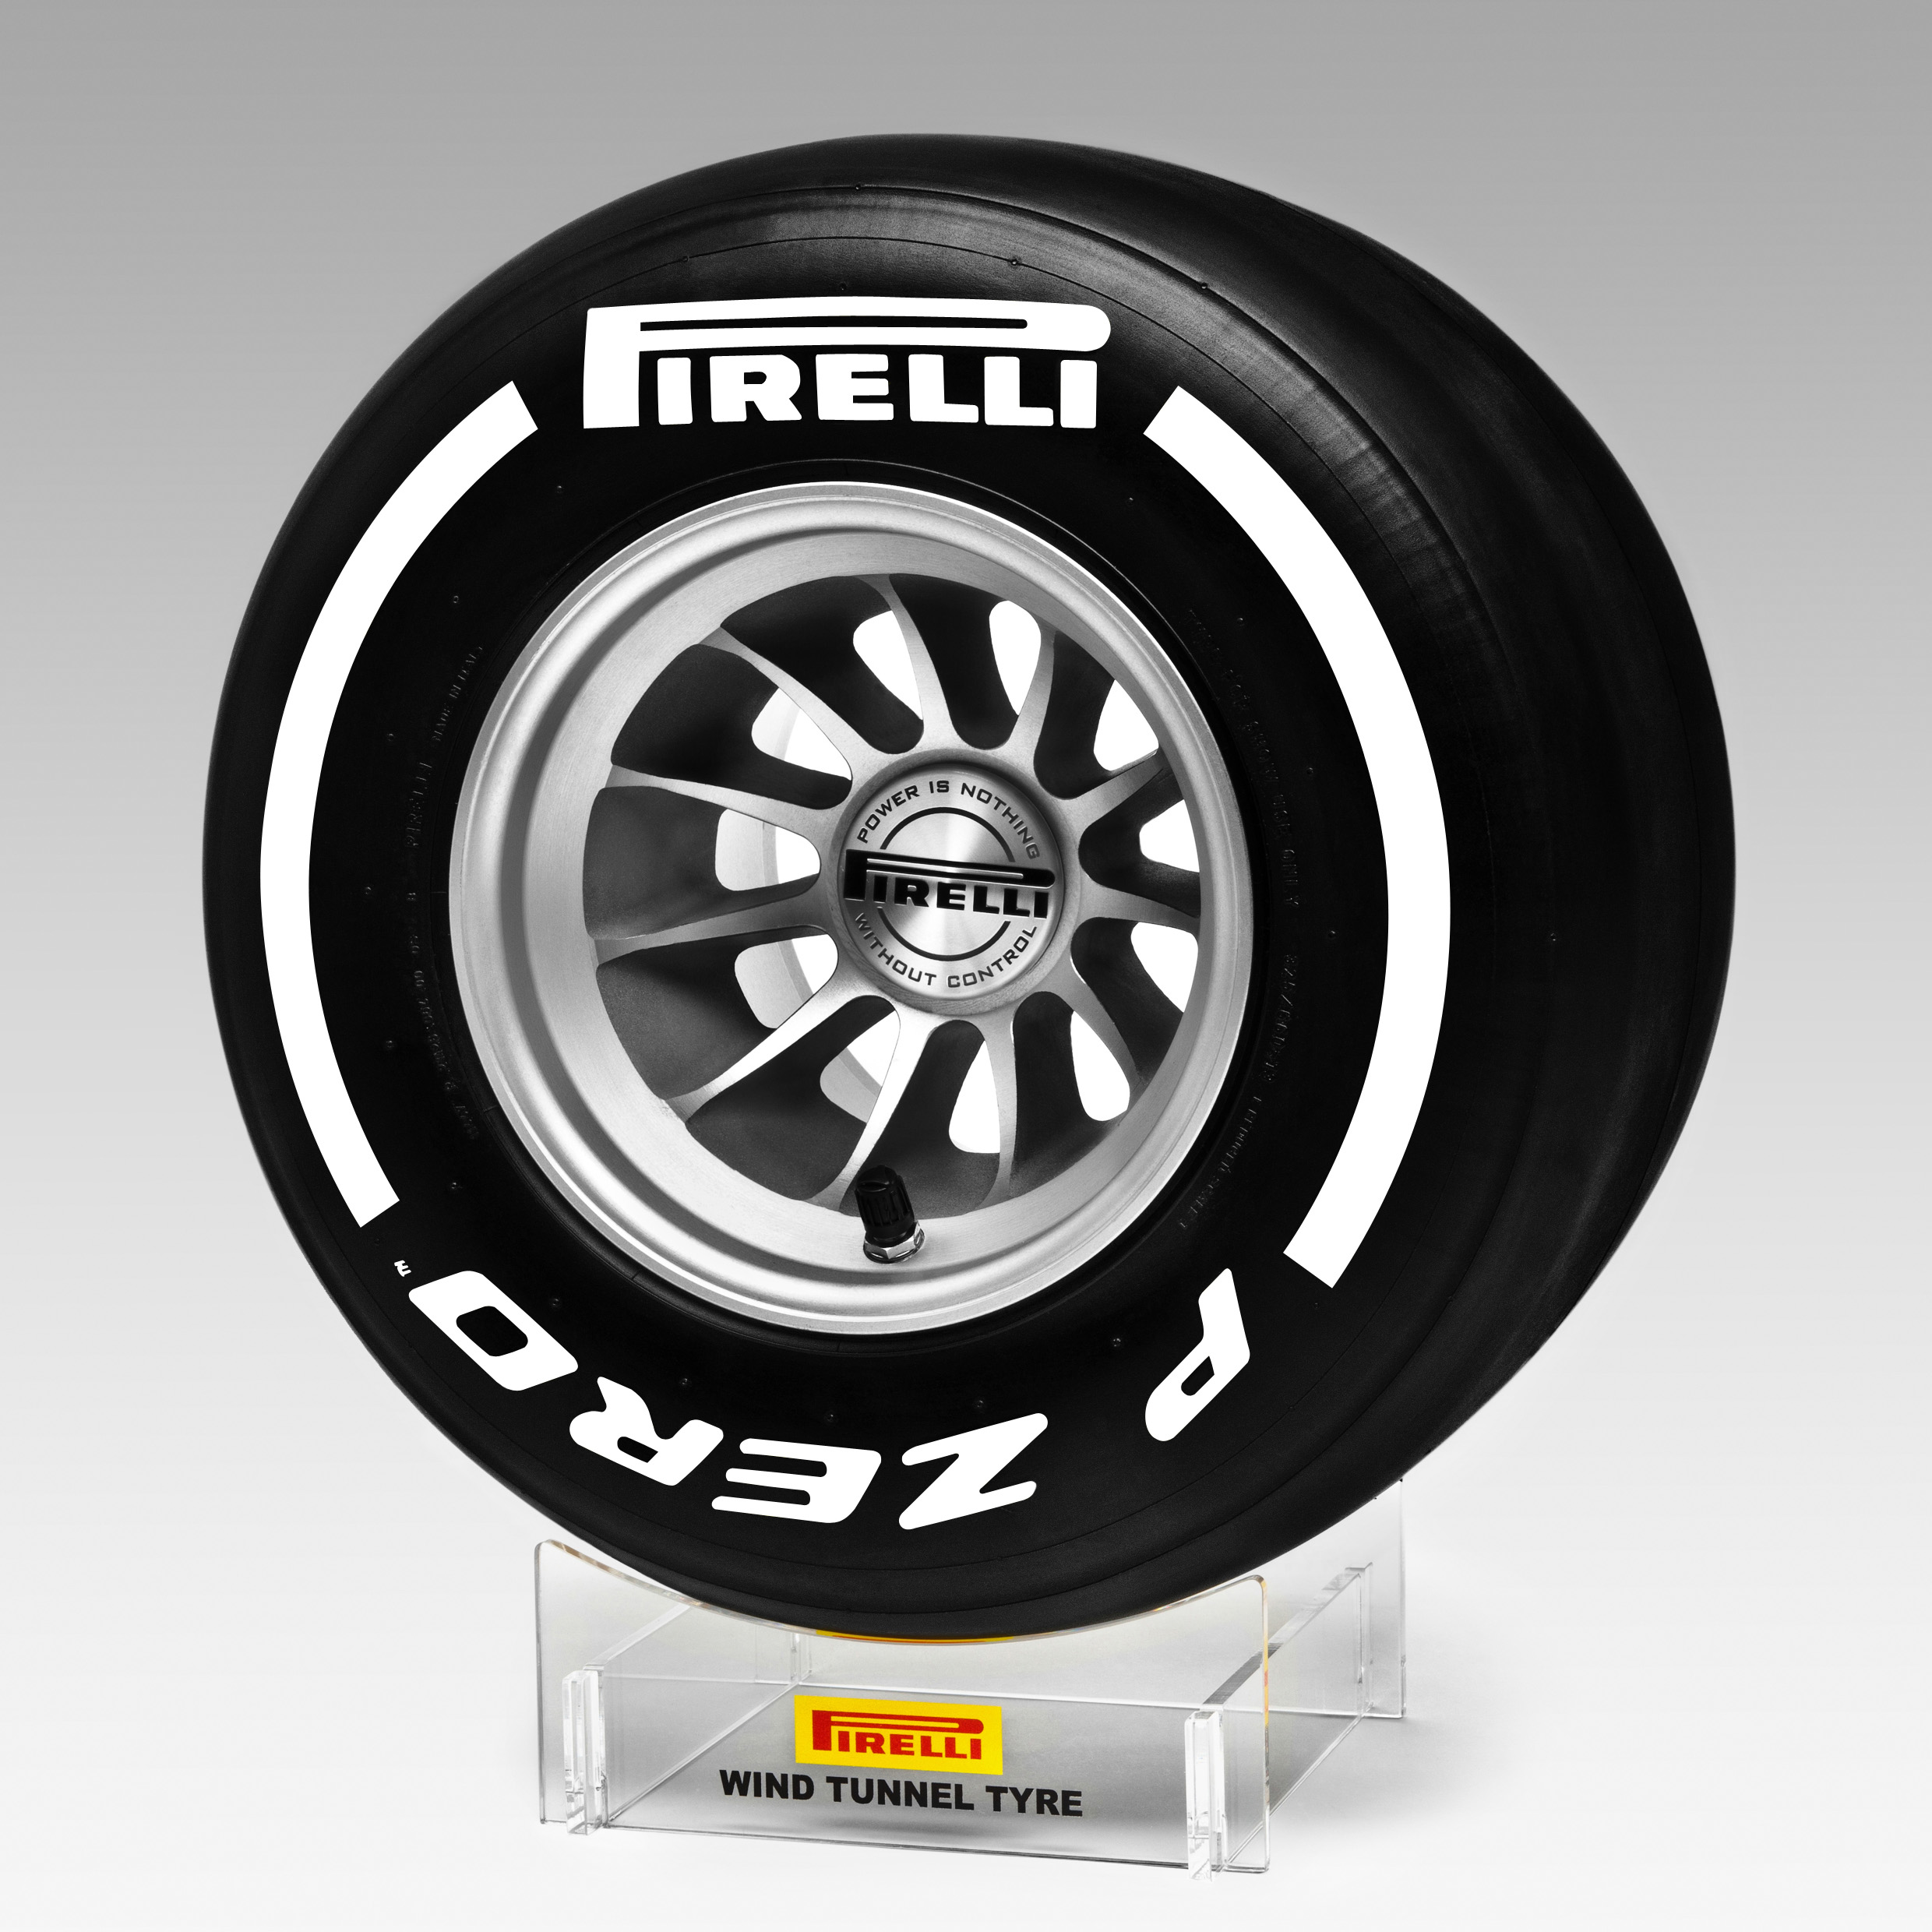 Pirelli Medium Replica Wind Tunnel Tyre 1:2 Scale